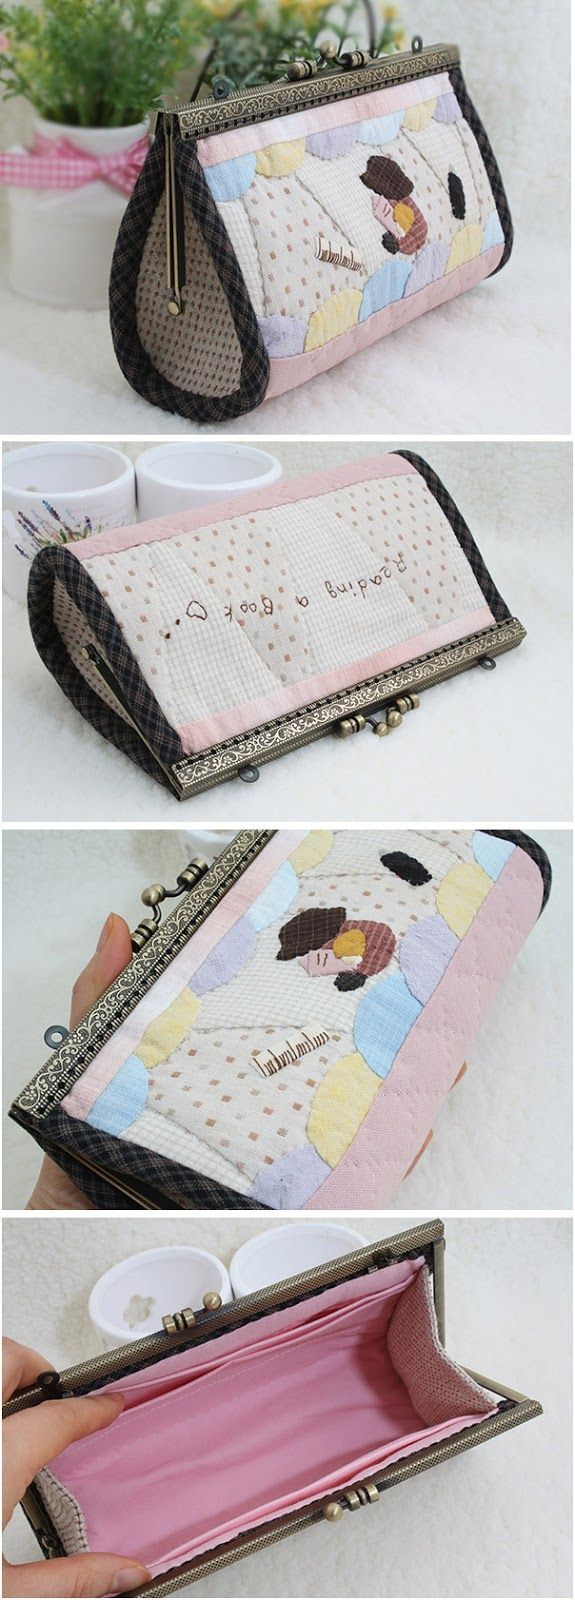 Women bags Patchwork tie-fabric clutch.  DIY step-by-step tutorial. Косметичка или клатч в технике пэтчворк. http://www.handmadiya.com/2015/08/patchwork-purse-clutch-diy-tutorial.html